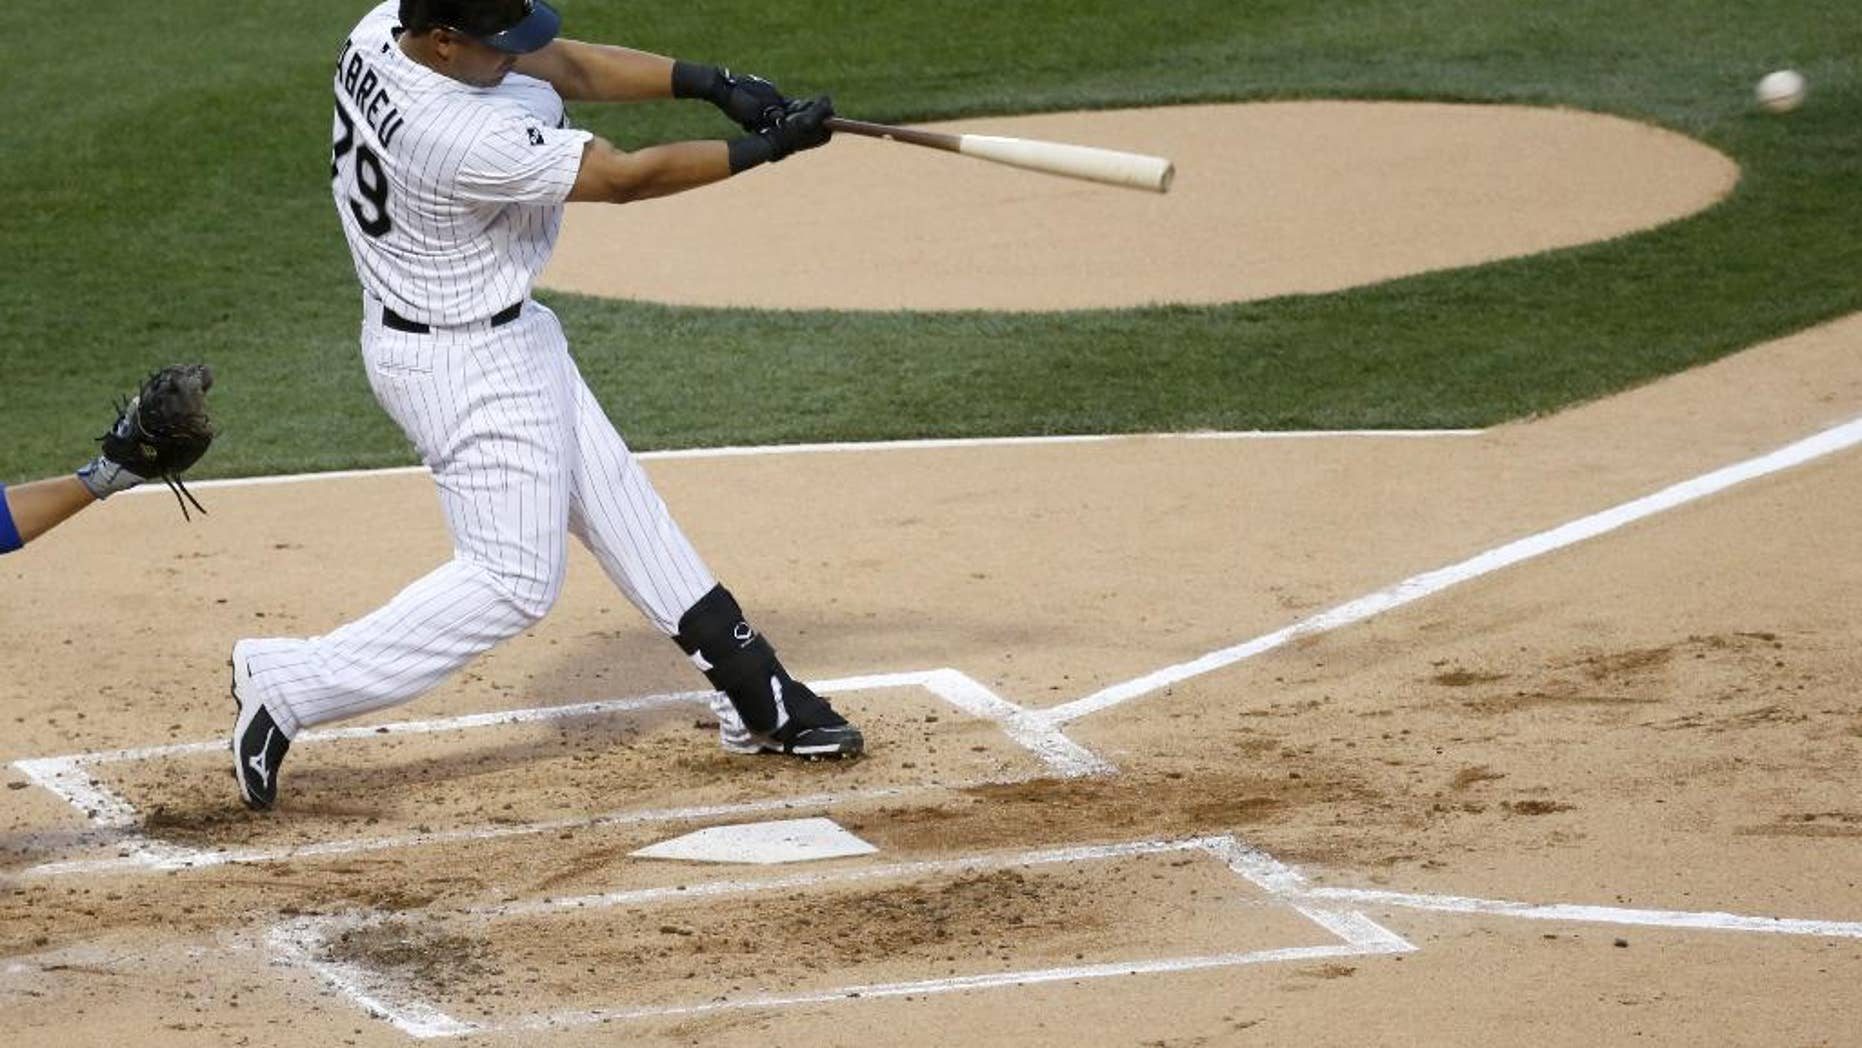 Chicago White Sox's Jose Abreu hits a single off Chicago Cubs starting pitcher Jake Arrieta during the first inning of an interleague baseball game Thursday, May 8, 2014, in Chicago. (AP Photo/Charles Rex Arbogast)